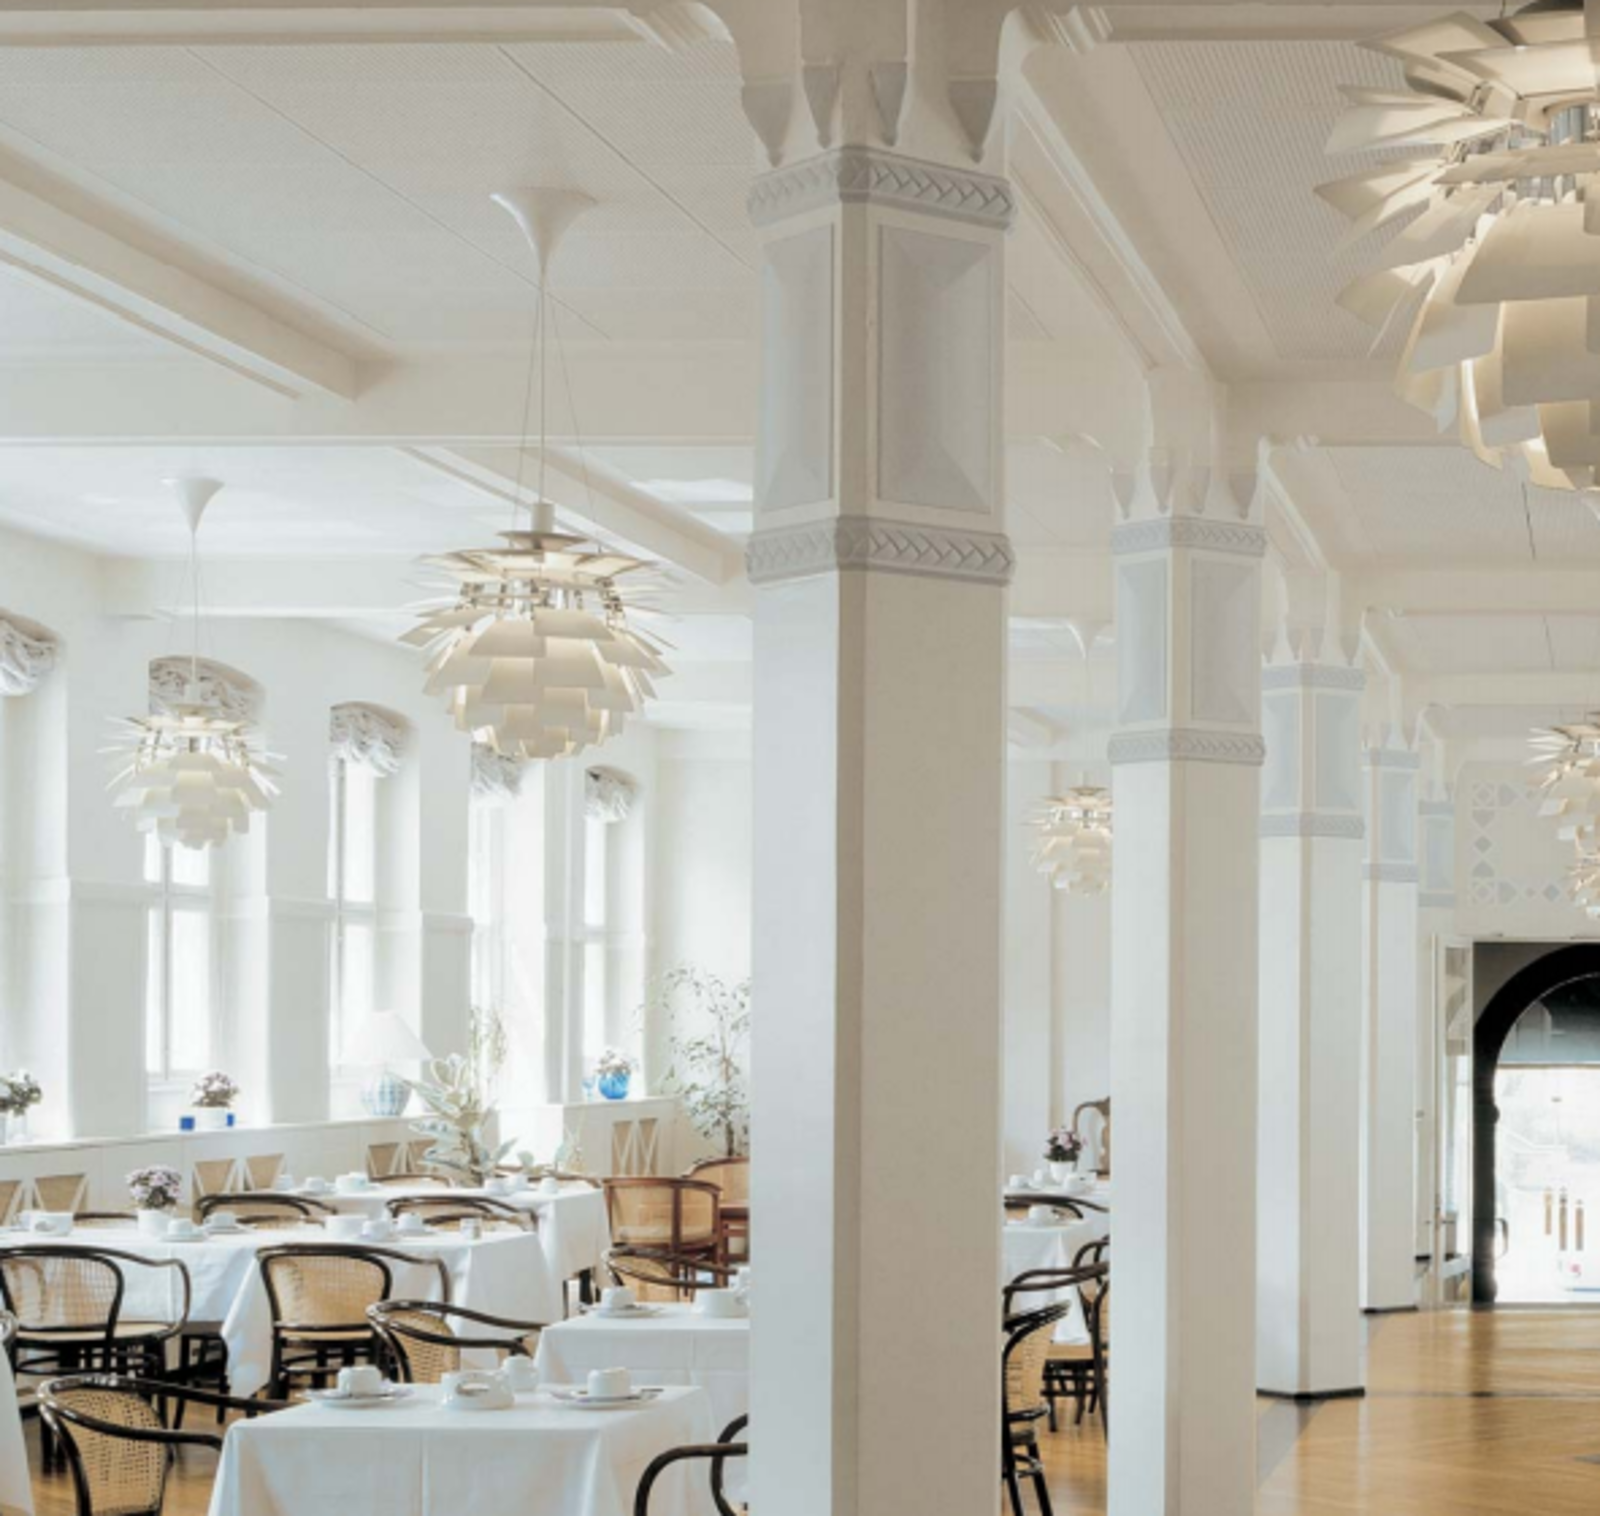 The simplicity of the PH Artichoke complements the architectural details of the Ascot Hotel in Copenhagen.  Photo 7 of 7 in The Lighting Fixture That Inspired A High-Stakes Heist: The PH Artichoke